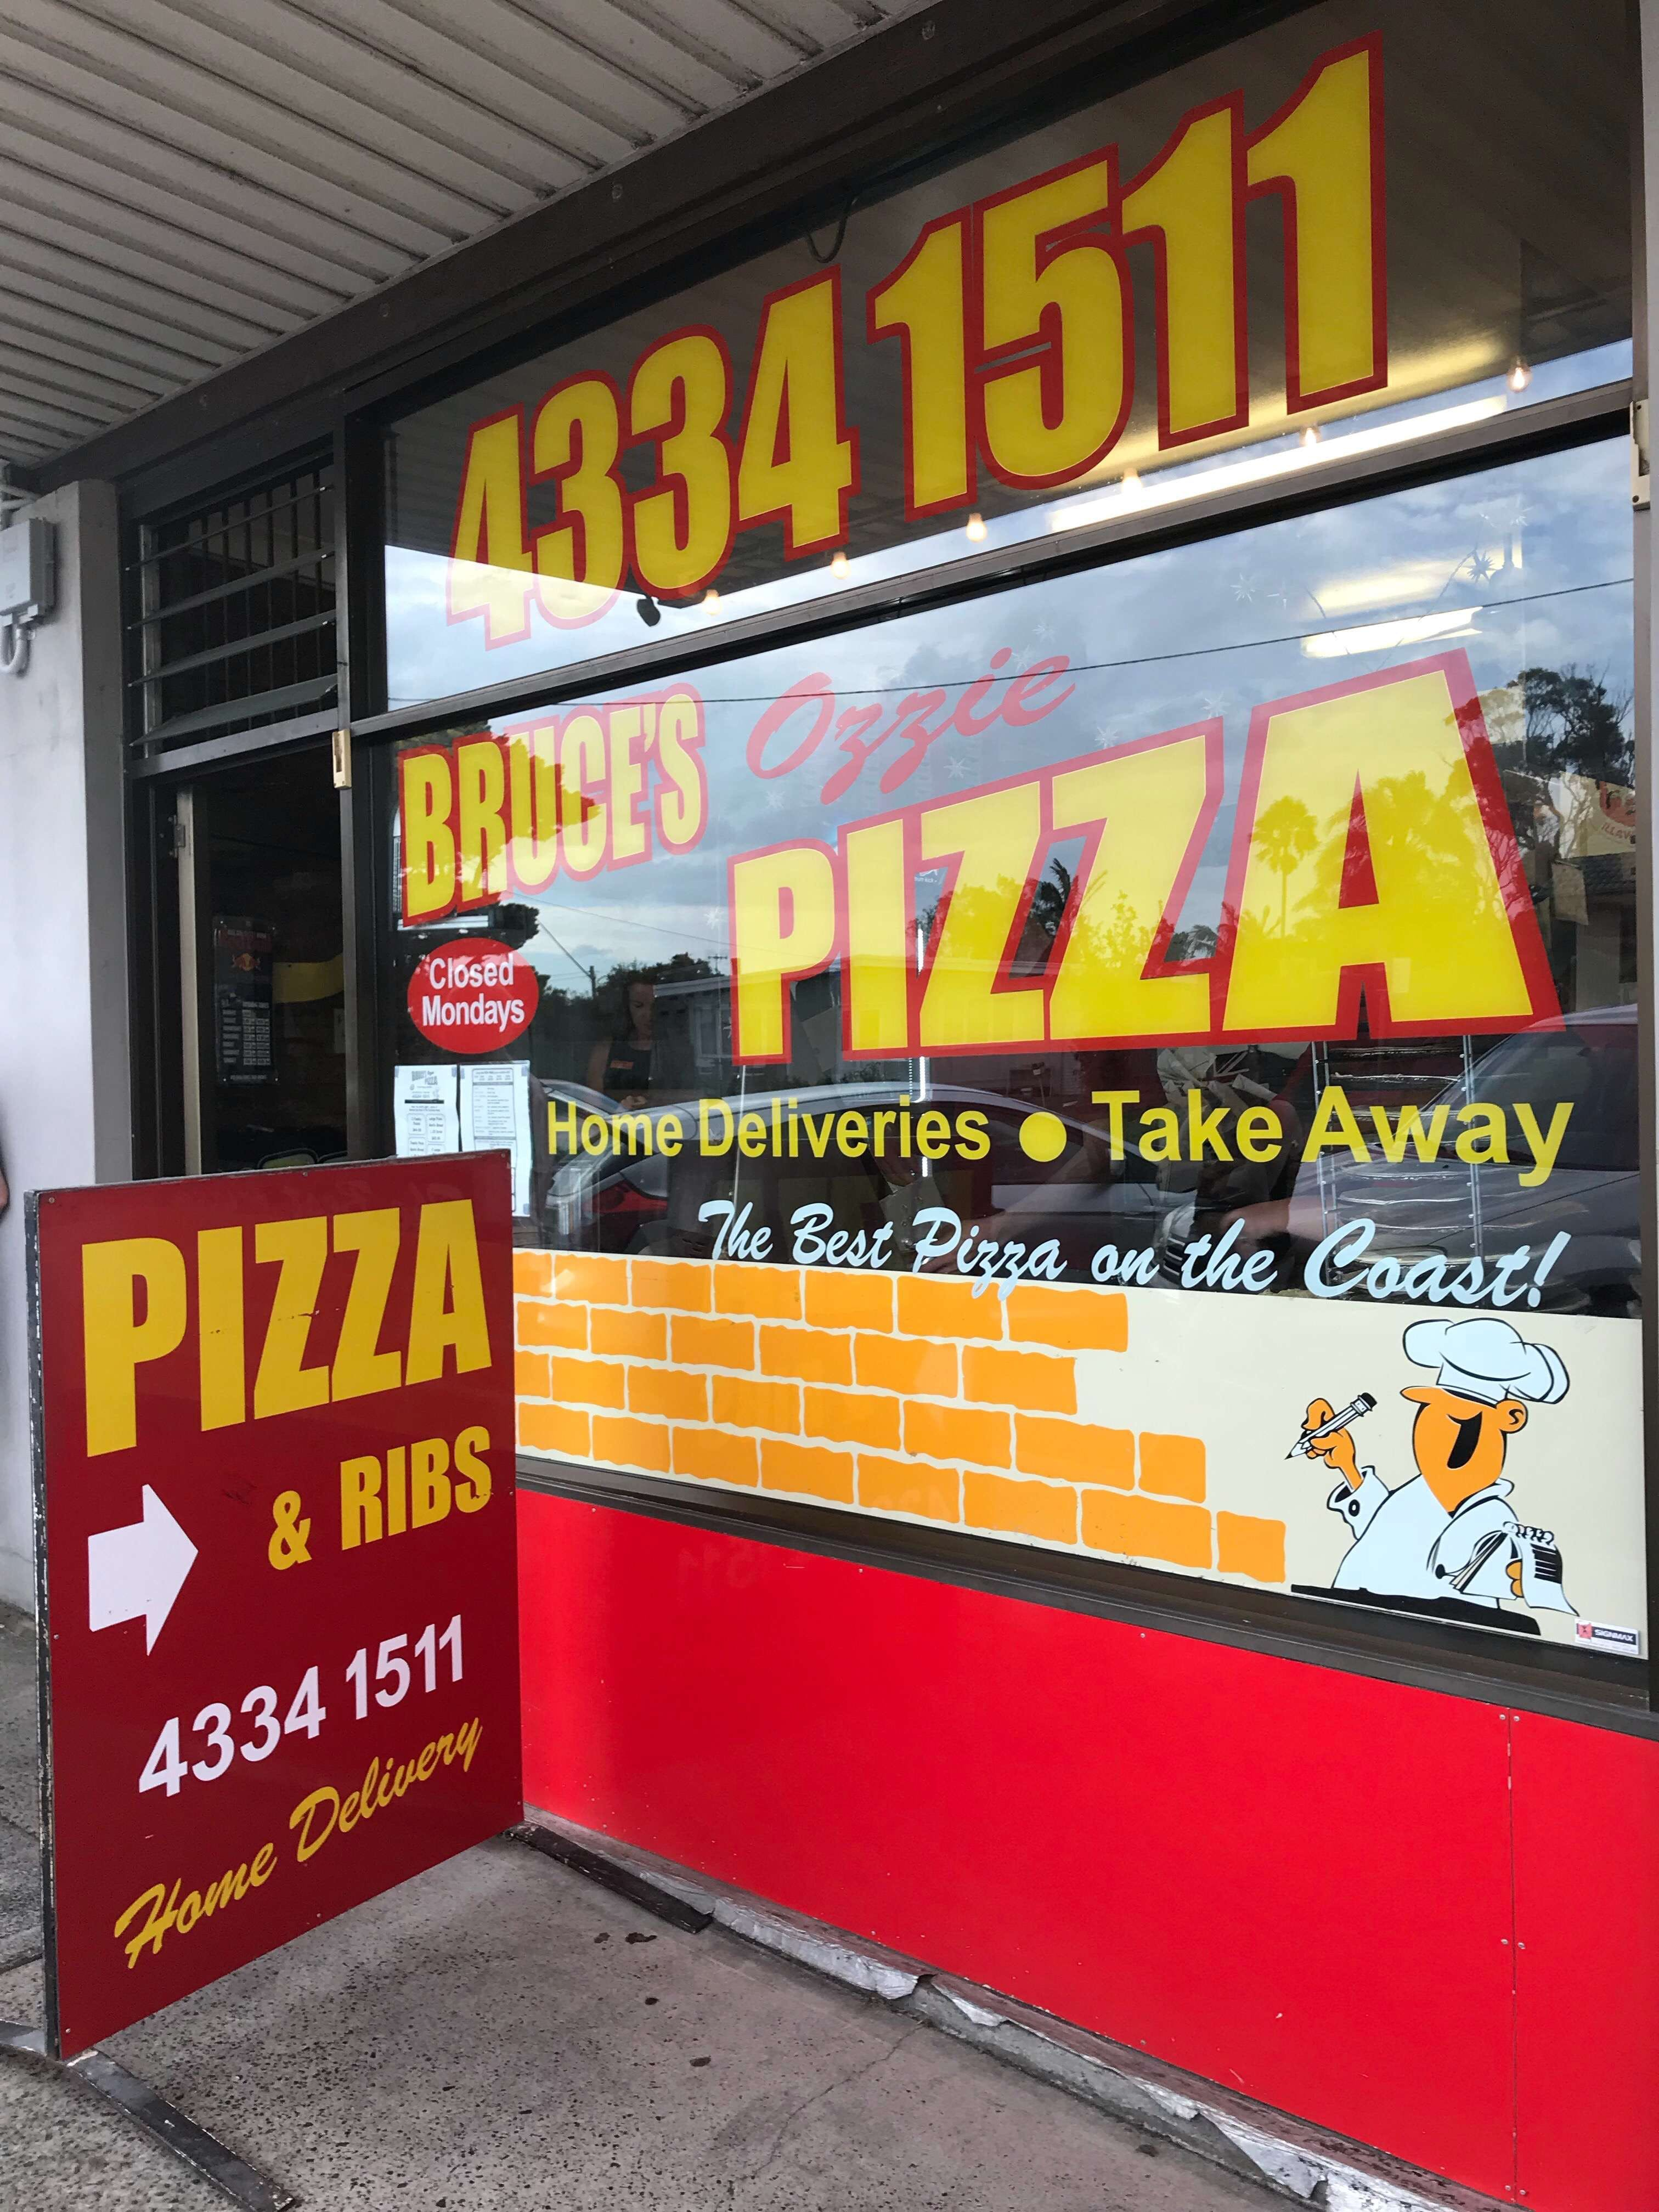 Bruces Ozzie Pizza - Sydney Tourism